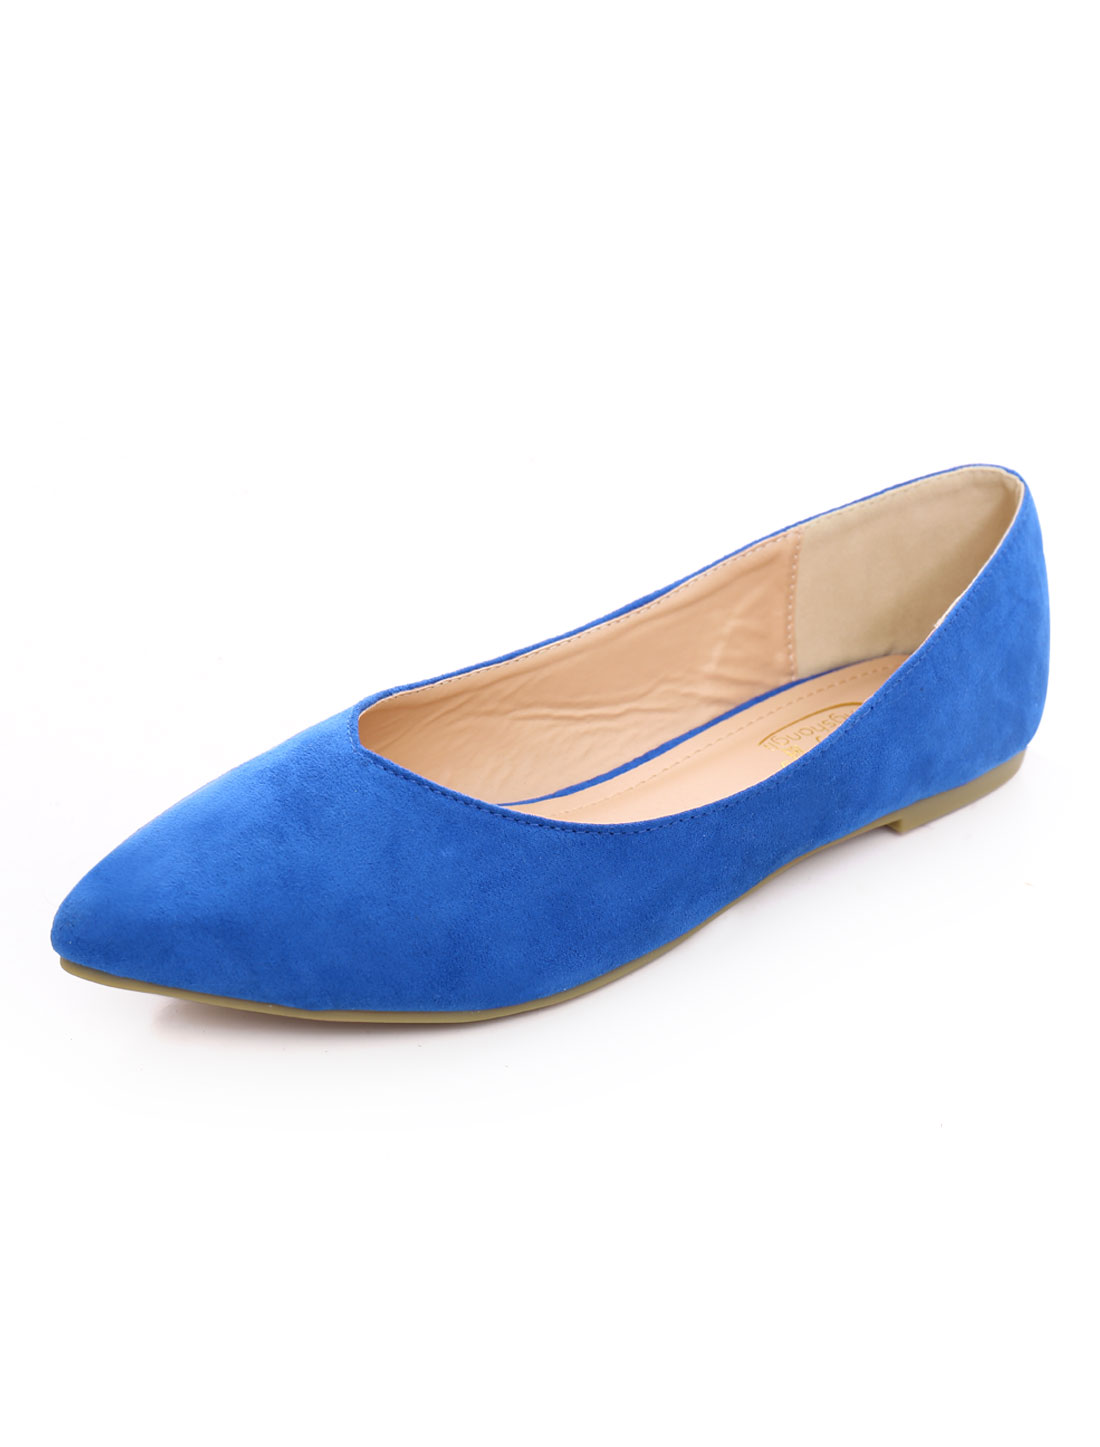 Women Faux Suede Textured Outsole Pointed Comfort Flat Blue US 8